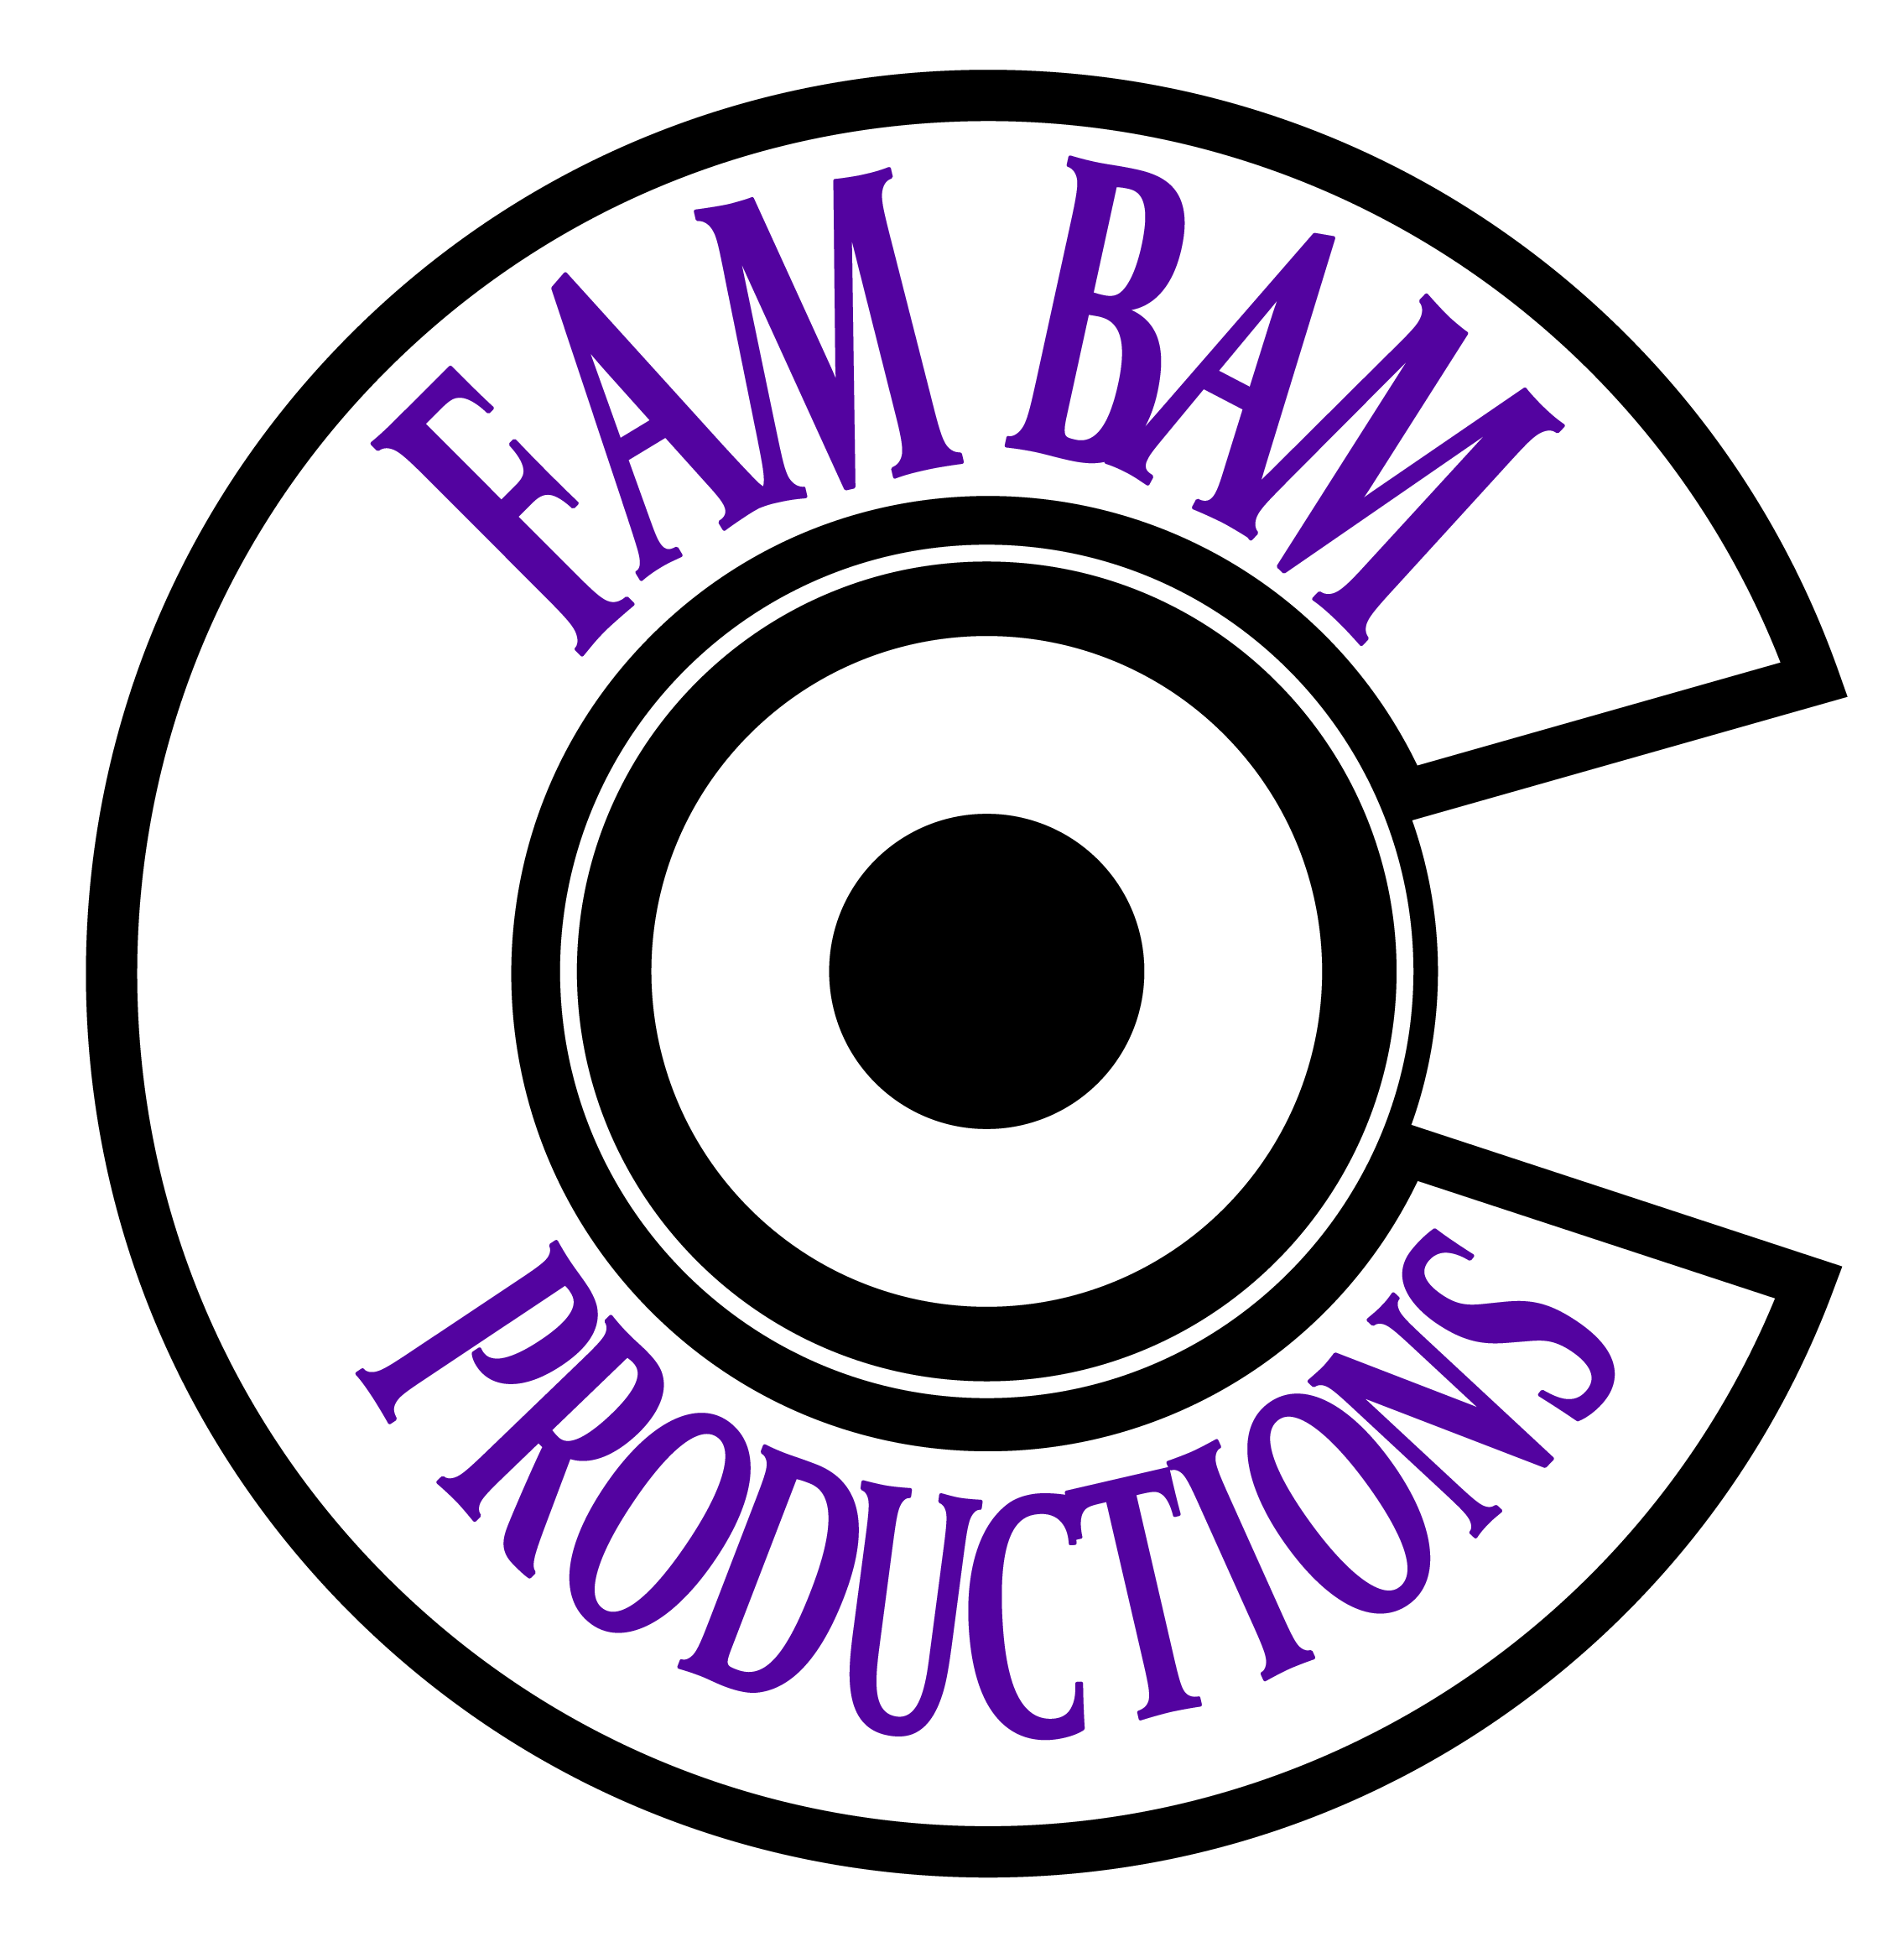 fam bam productions simple file-01.png